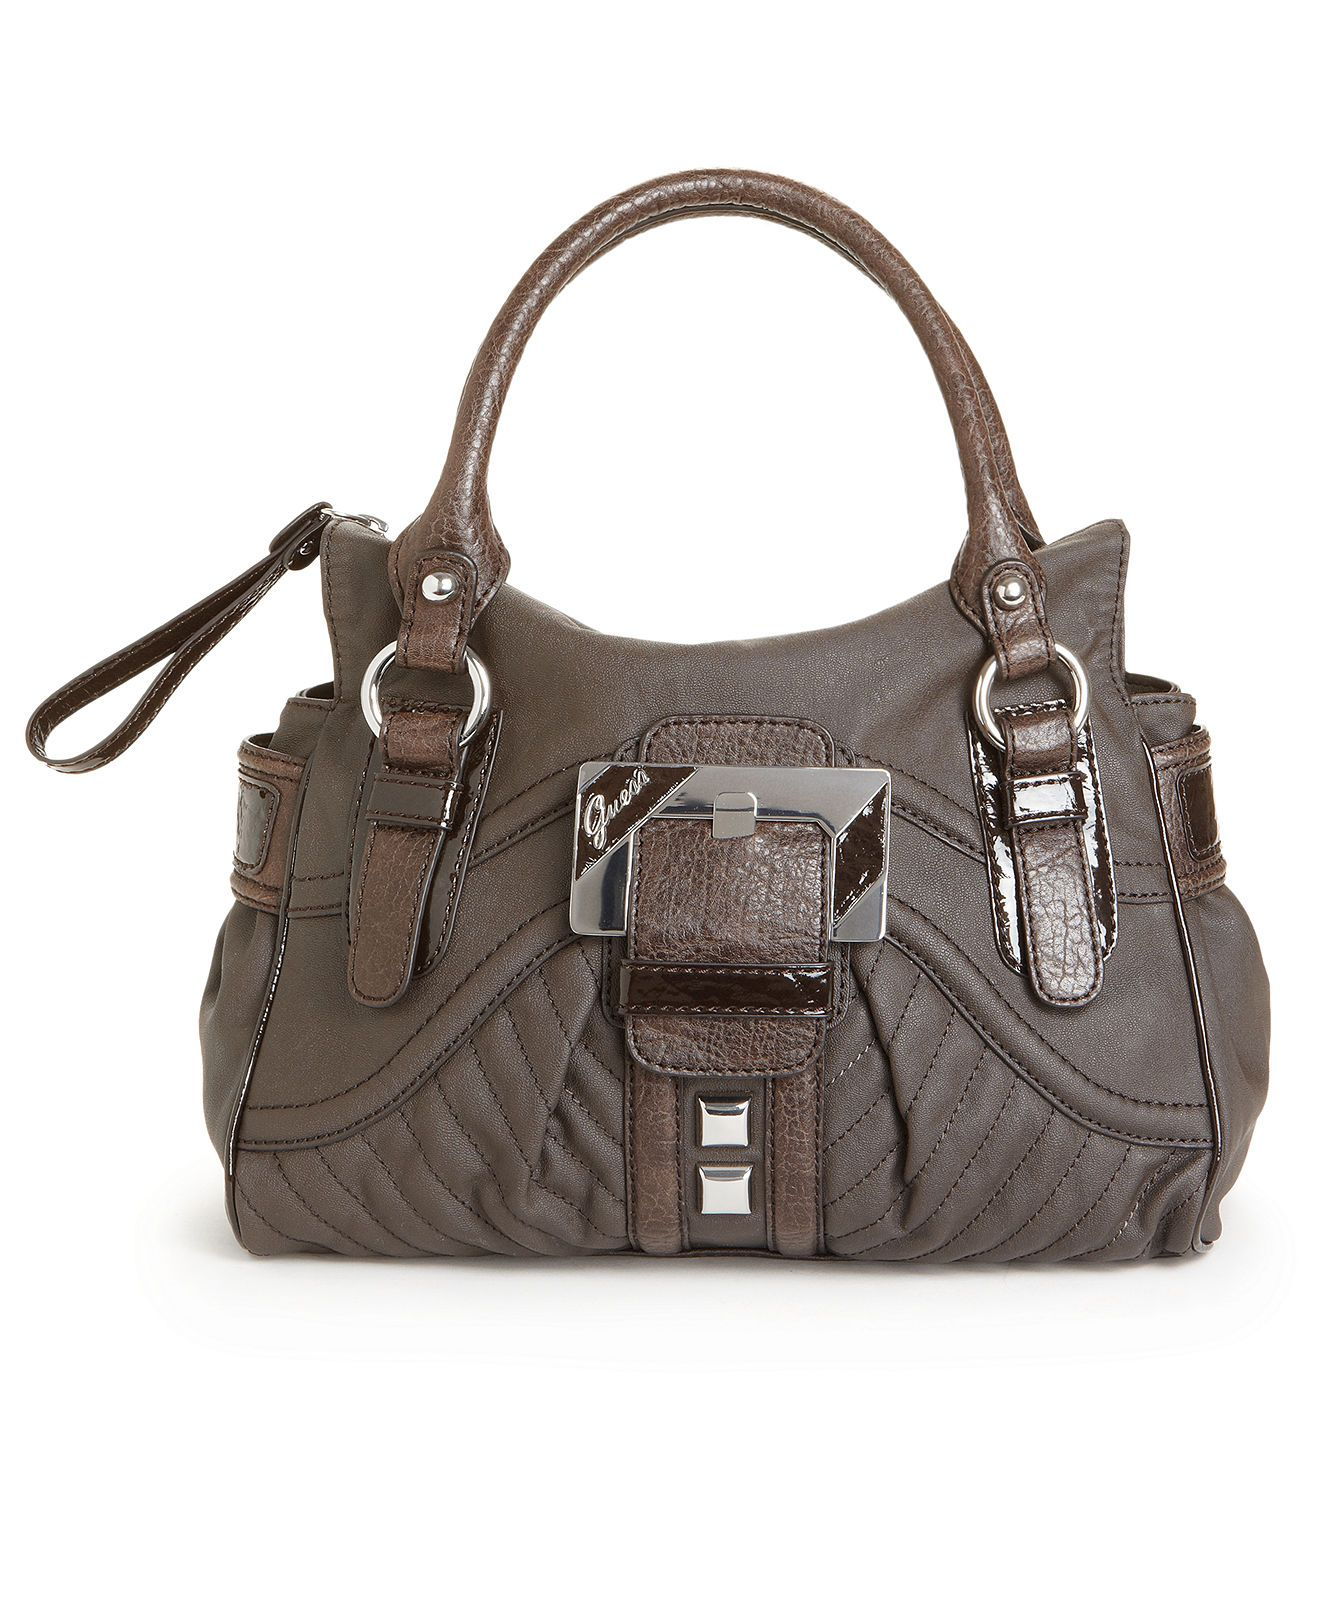 Guess Foldover Satchel Great Price This Might Be The Handbag Winner